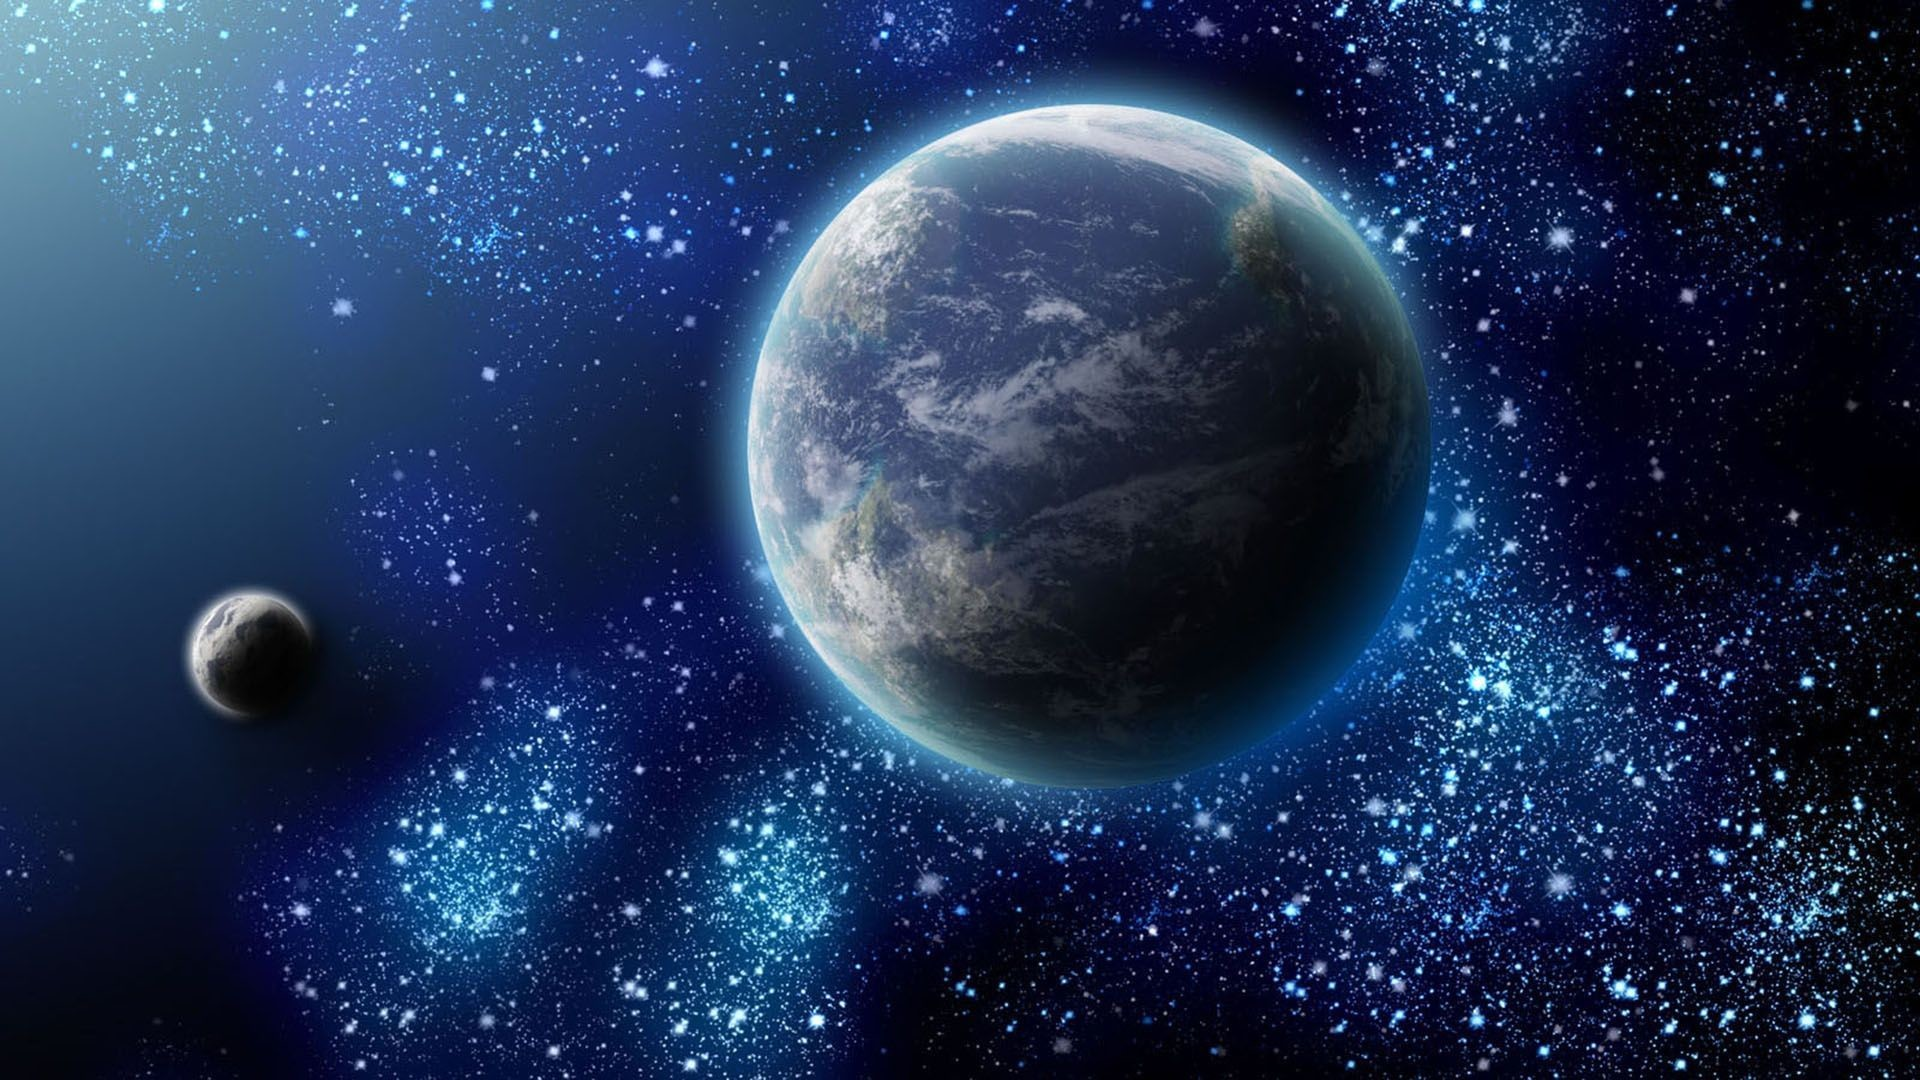 cool-space-planets-backgrounds-for-desktop-1920×1080.jpg